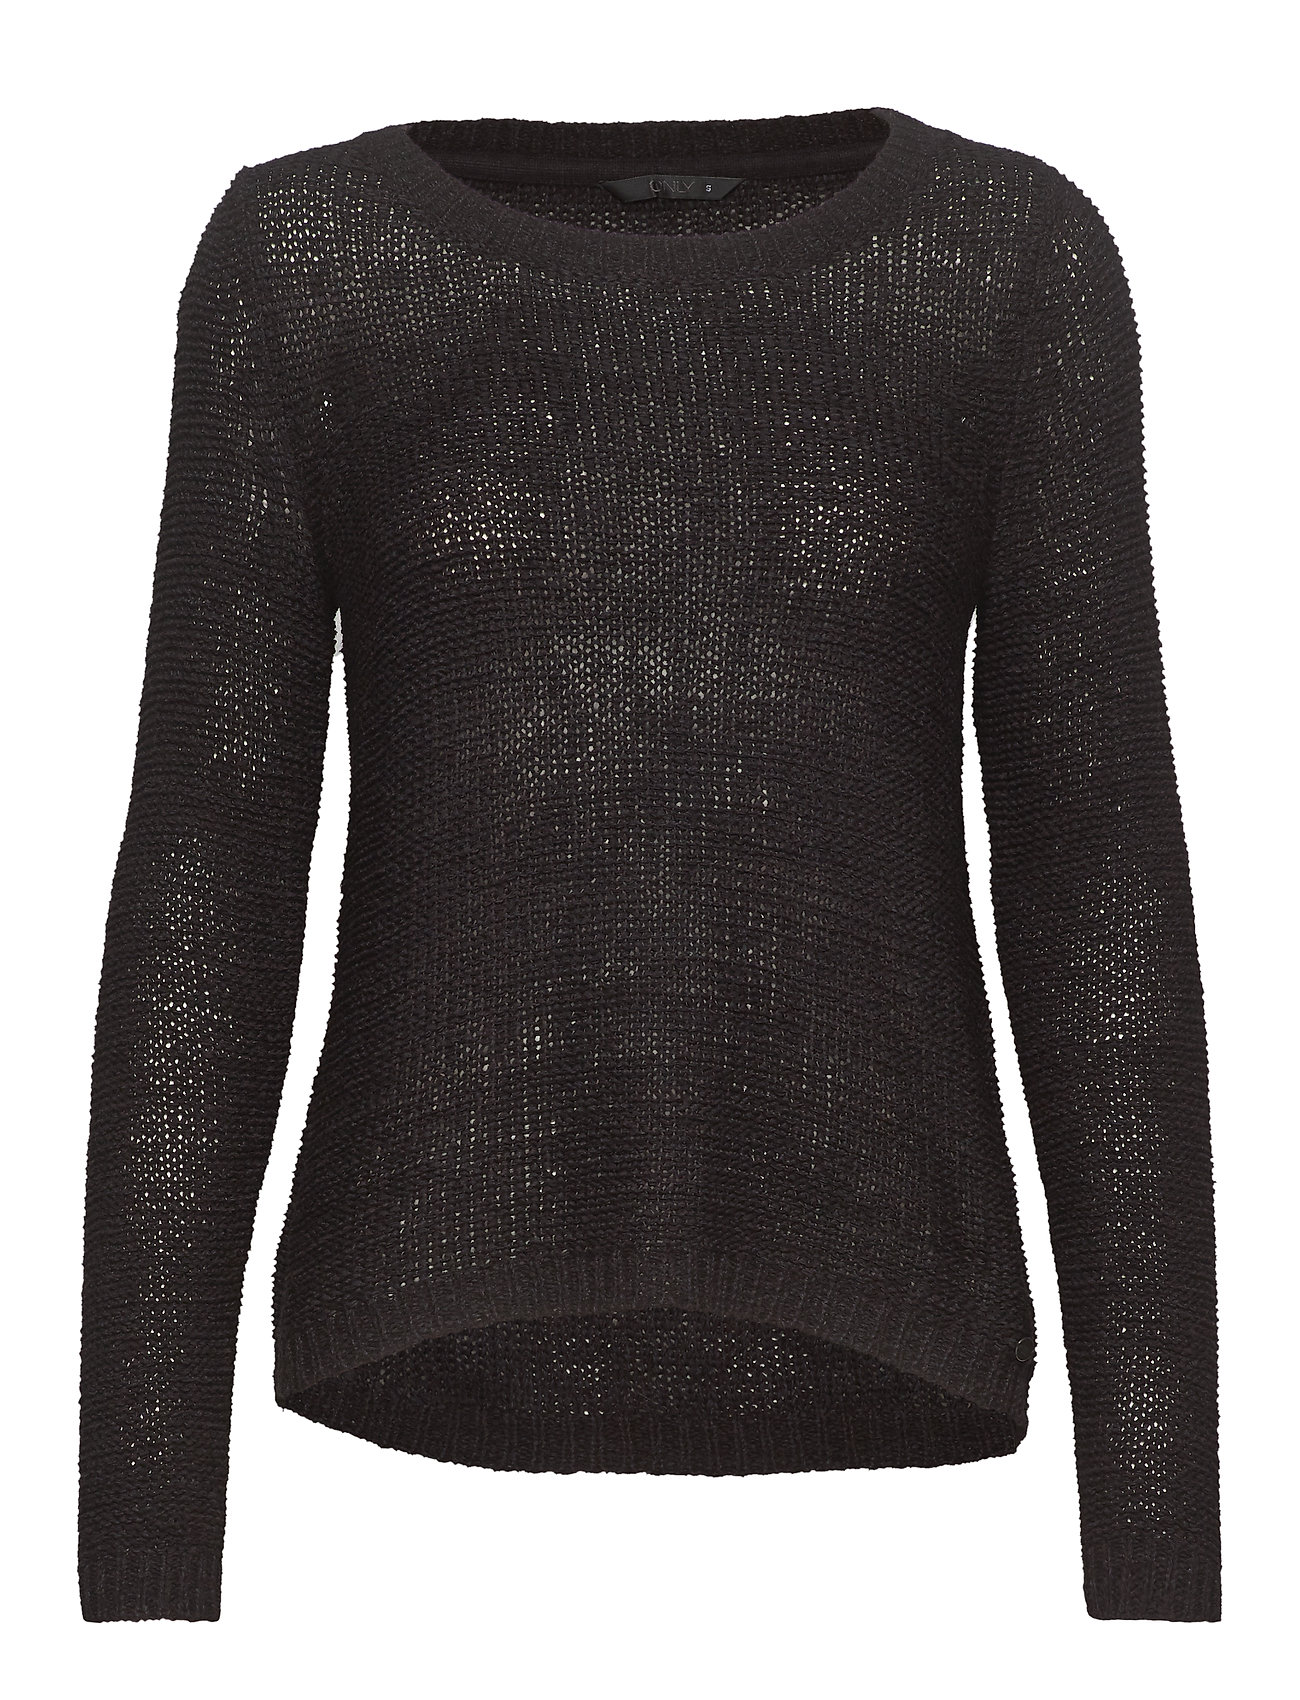 ONLY ONLGEENA XO L/S PULLOVER KNT NOOS - BLACK